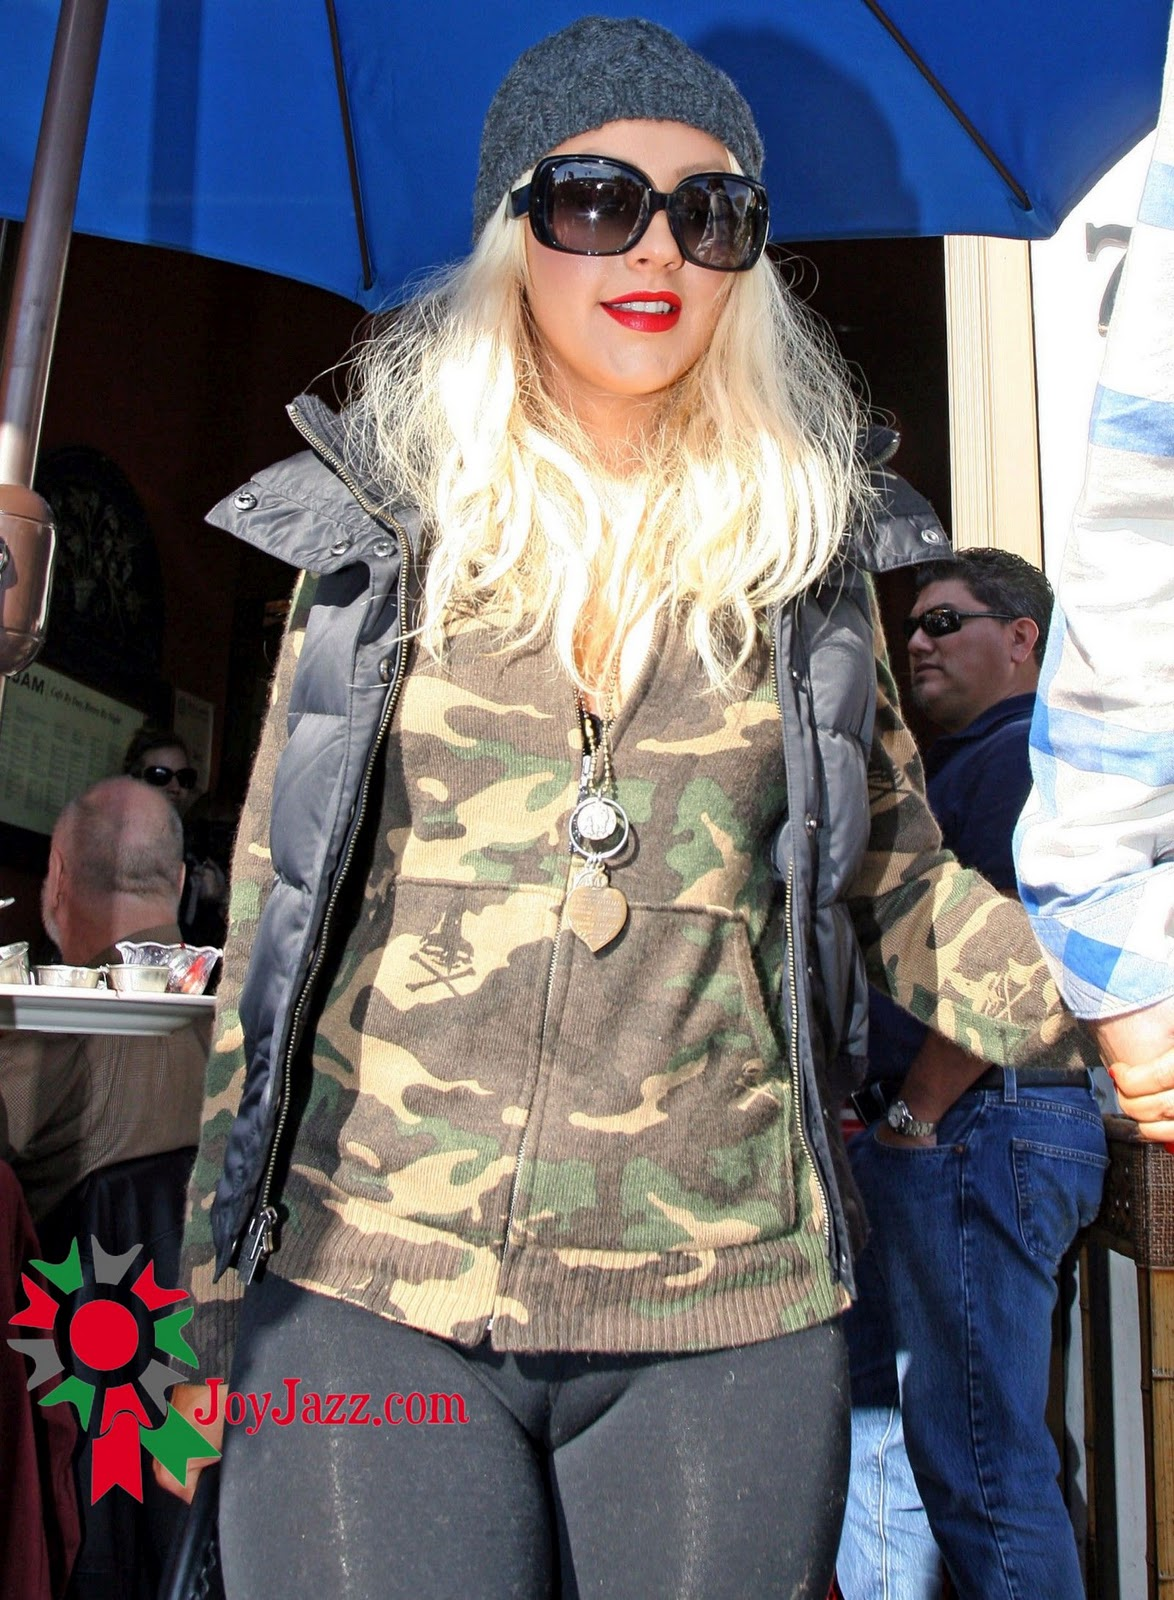 Hot and spicy: Christina Aguilera - Camel-Toe Candids in ...